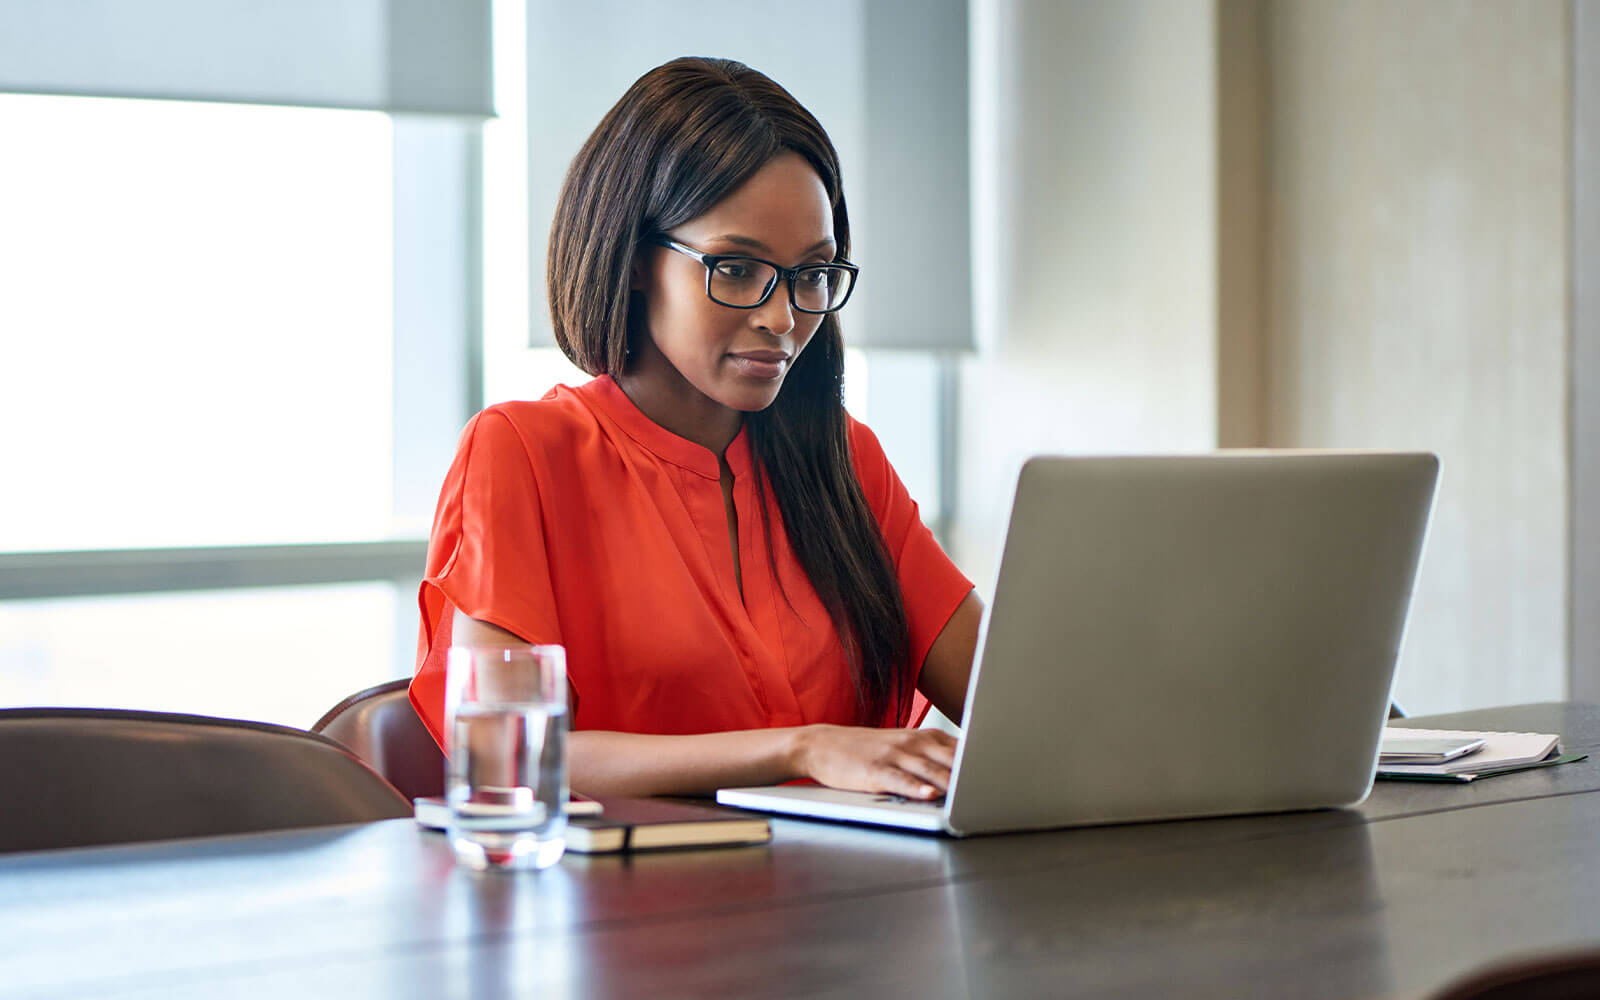 Woman working on her laptop at desk